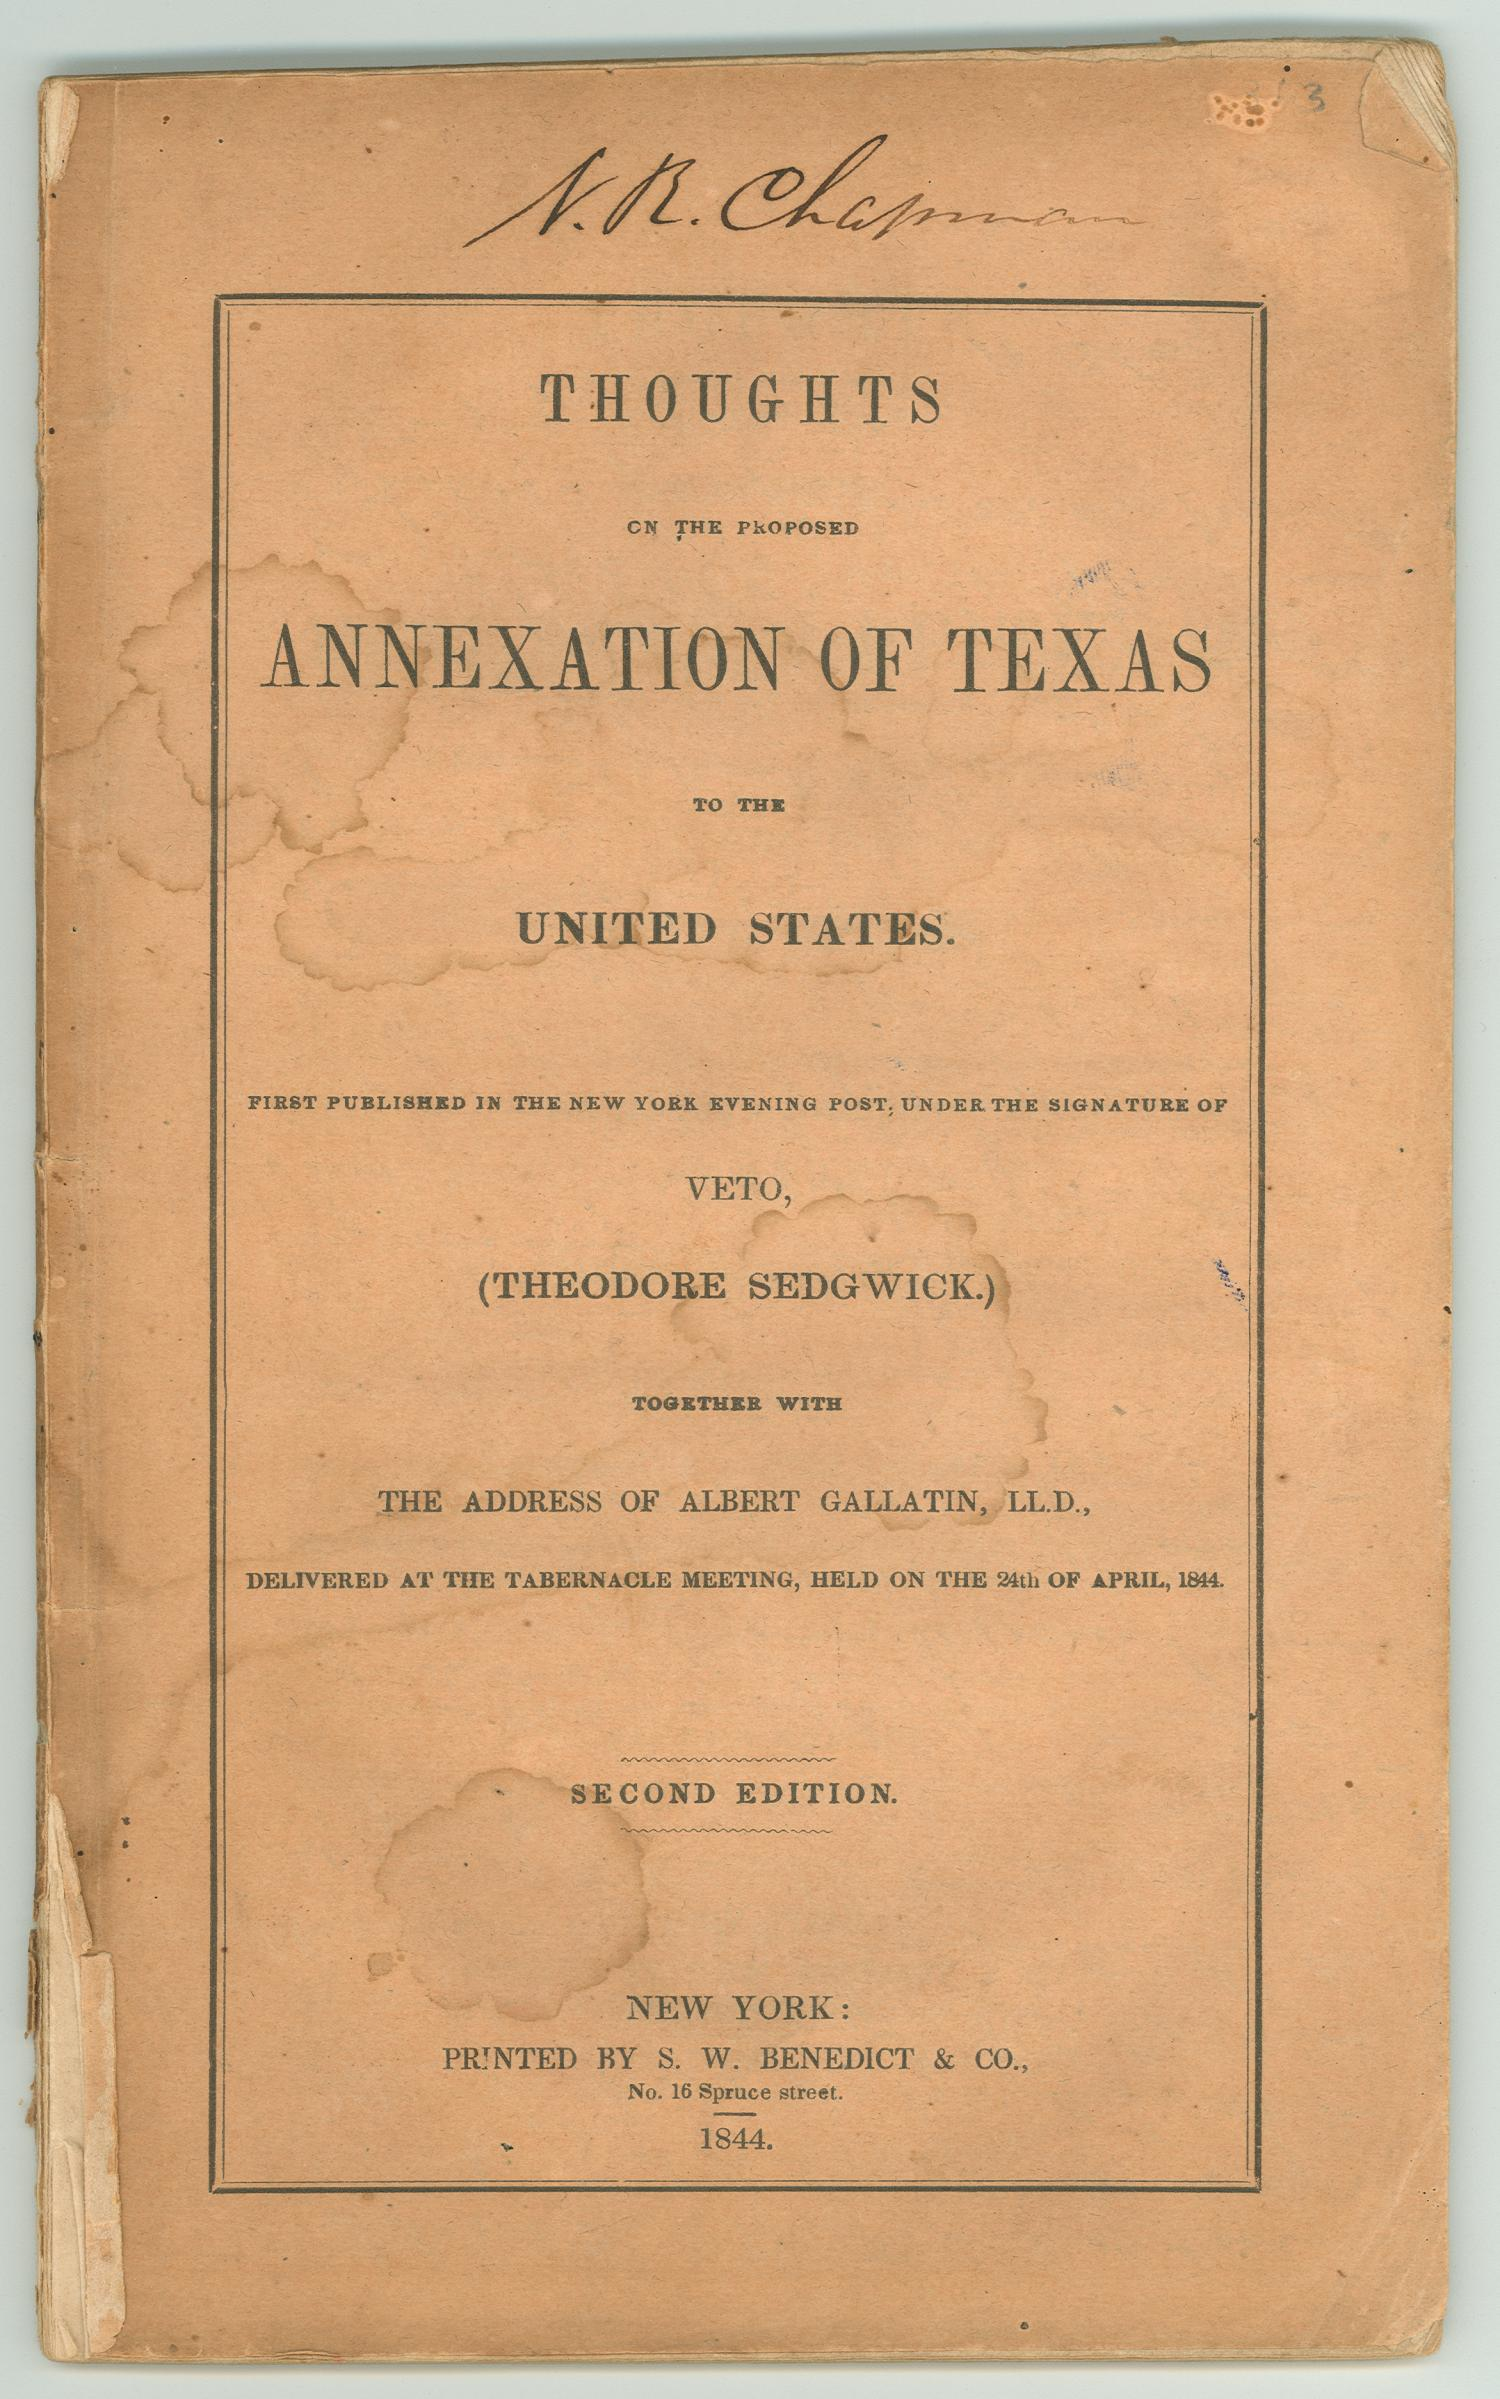 Thoughts On The Proposed Annexation Of Texas To The United